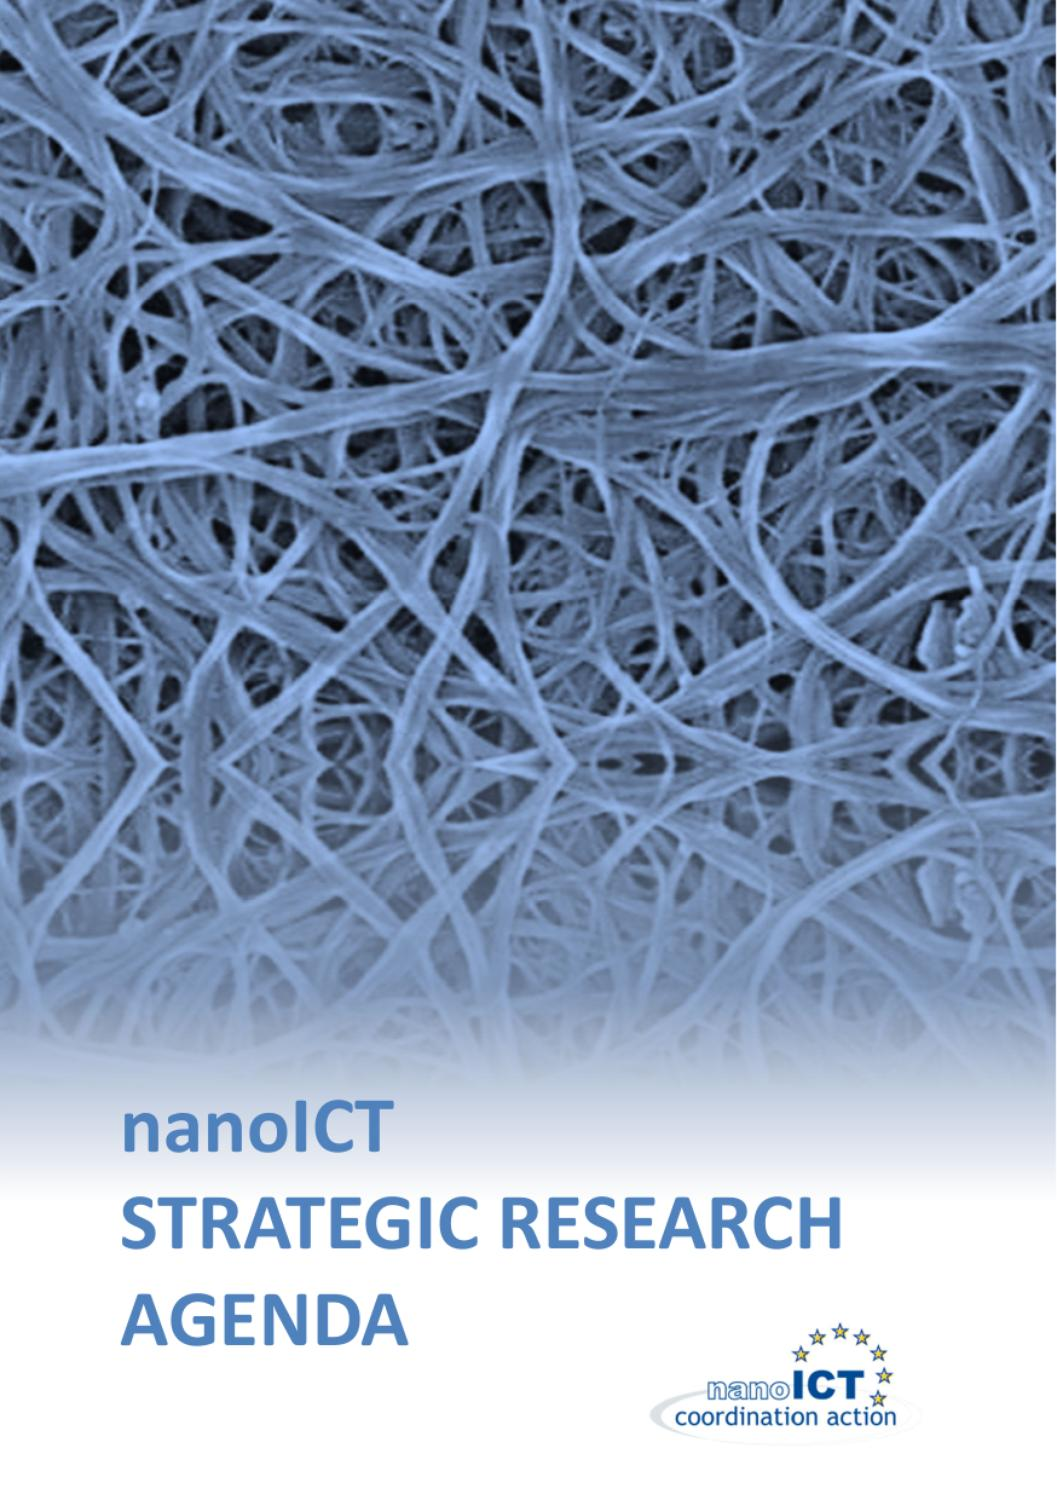 hight resolution of nanoict strategic research agenda version 2 0 by phantoms foundation issuu